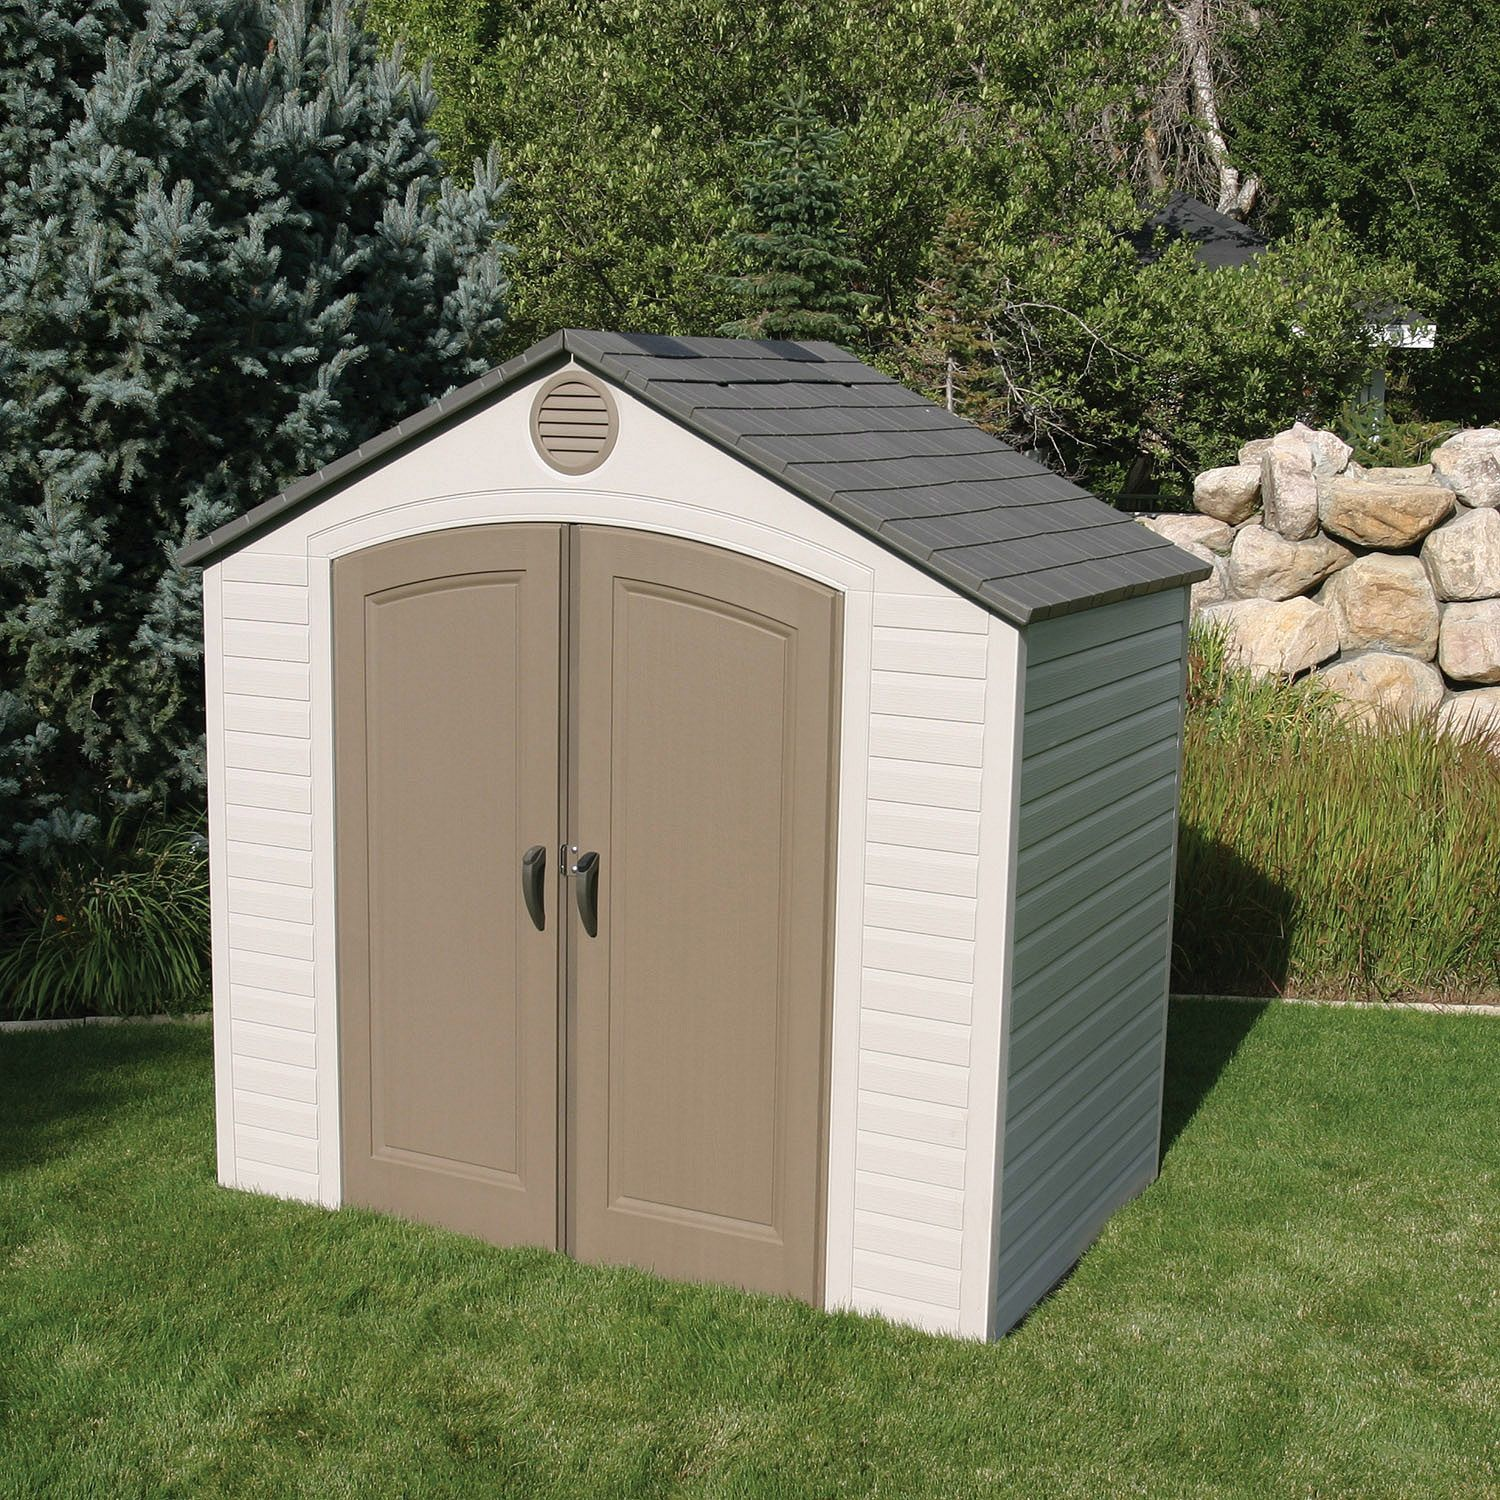 Outdoor Sheds A Shed Is A Great Place To Store Your Lawn Tools And Patio Furniture In The Off Season S Plastic Storage Sheds Outdoor Storage Sheds Storage Shed